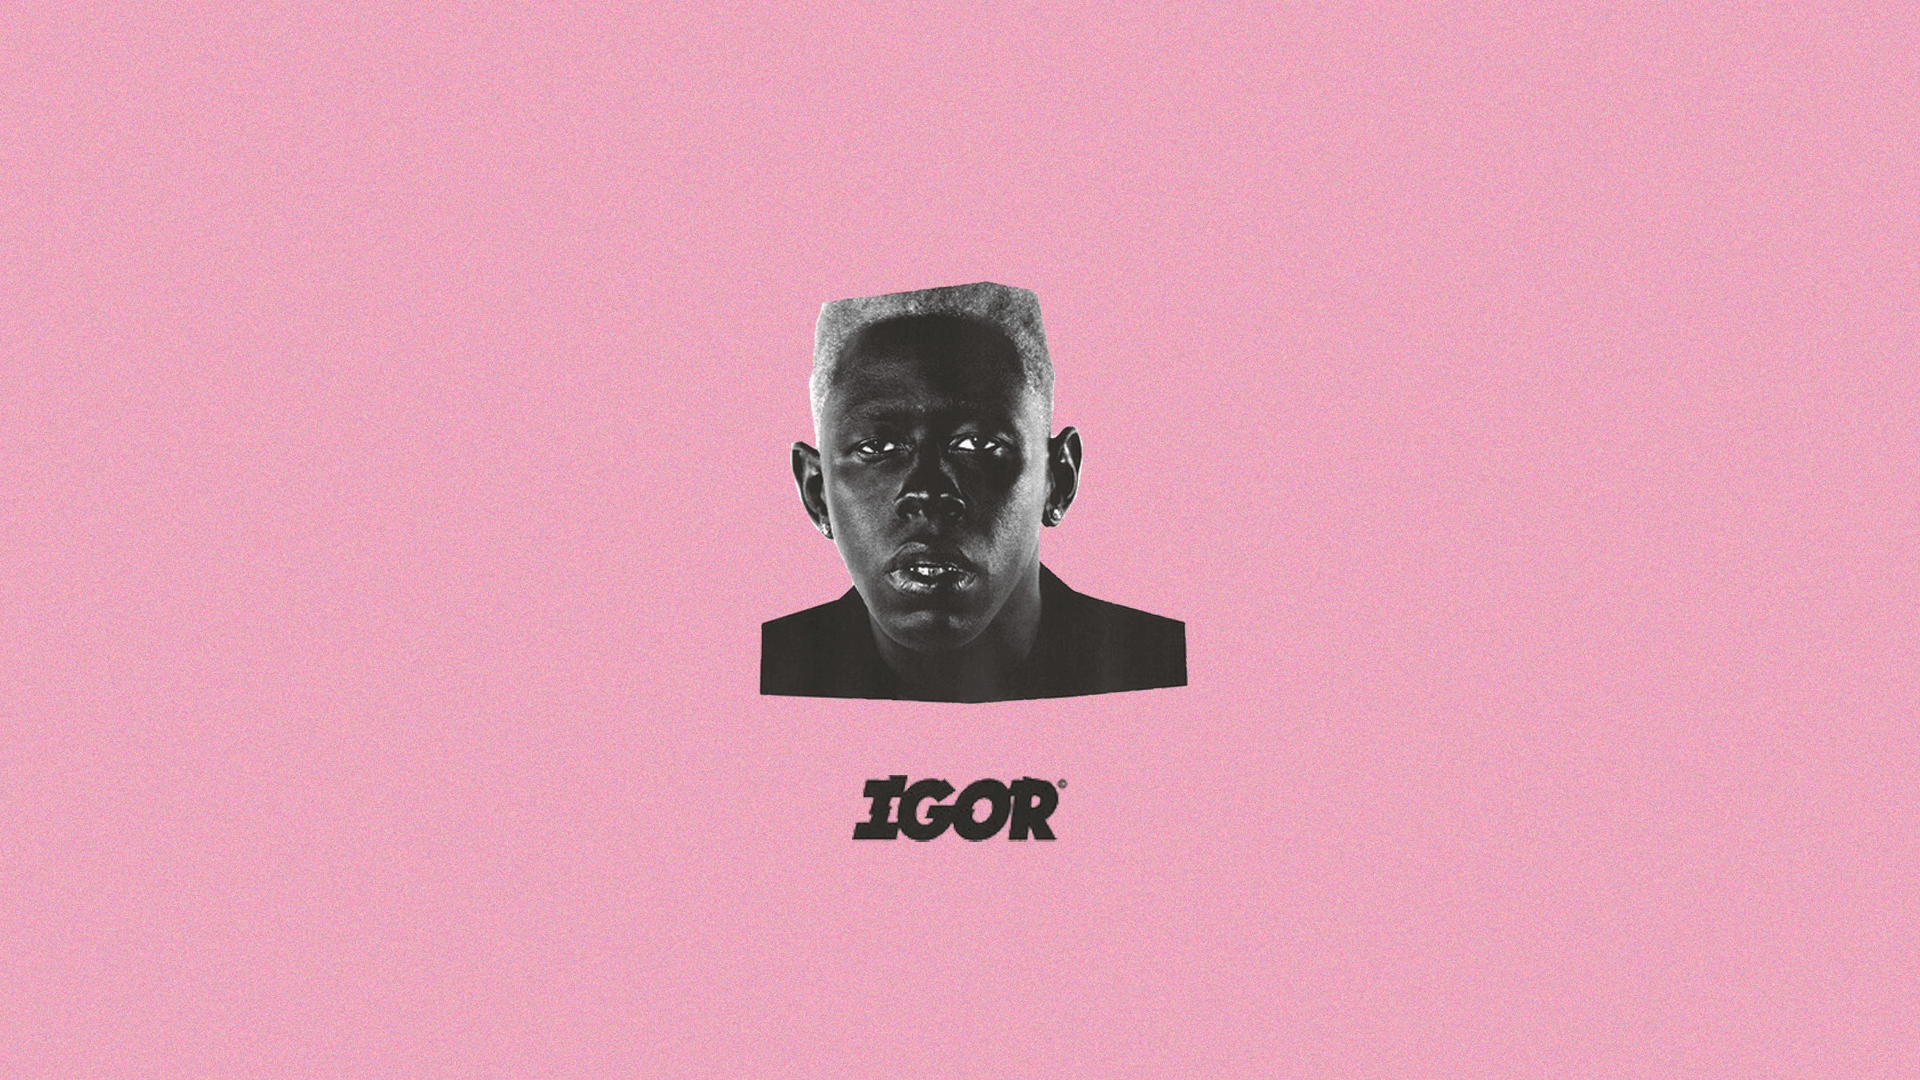 tyler the creator music wallpaper 70403